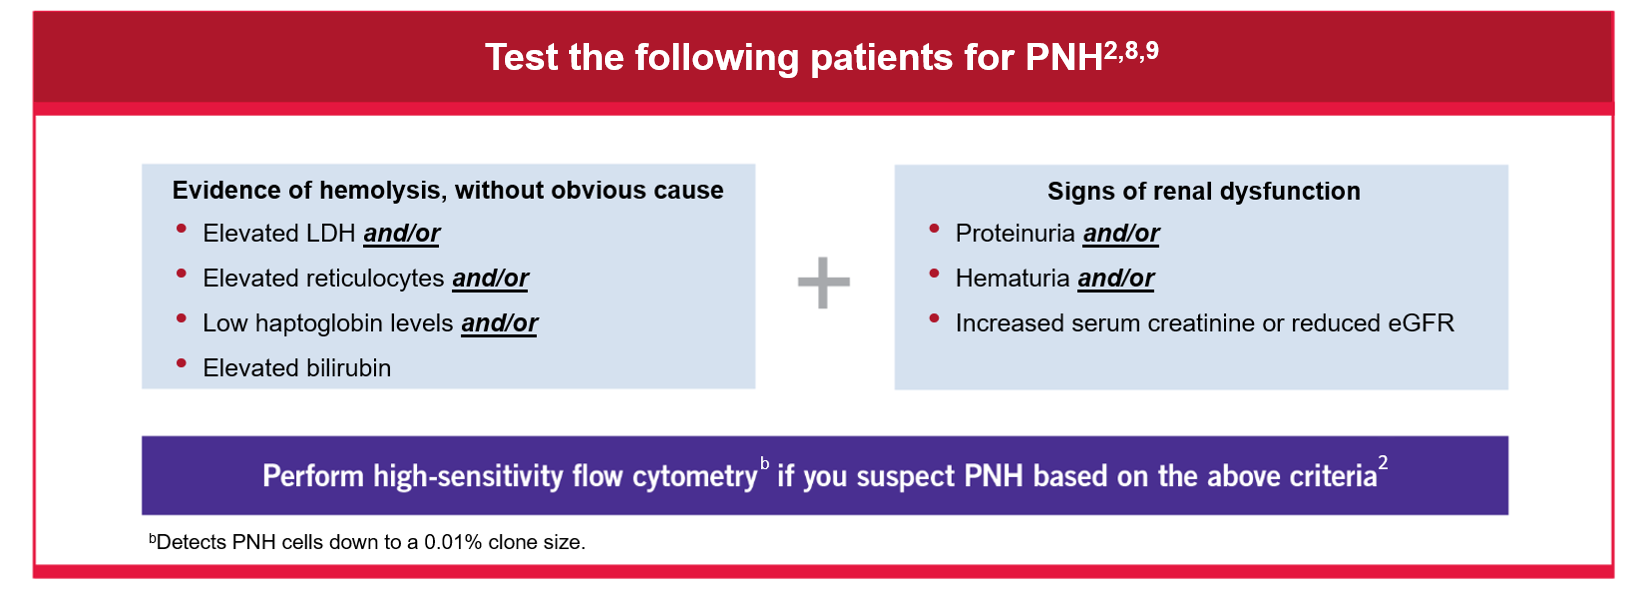 Test the following patients for PNH§ 2,14,15